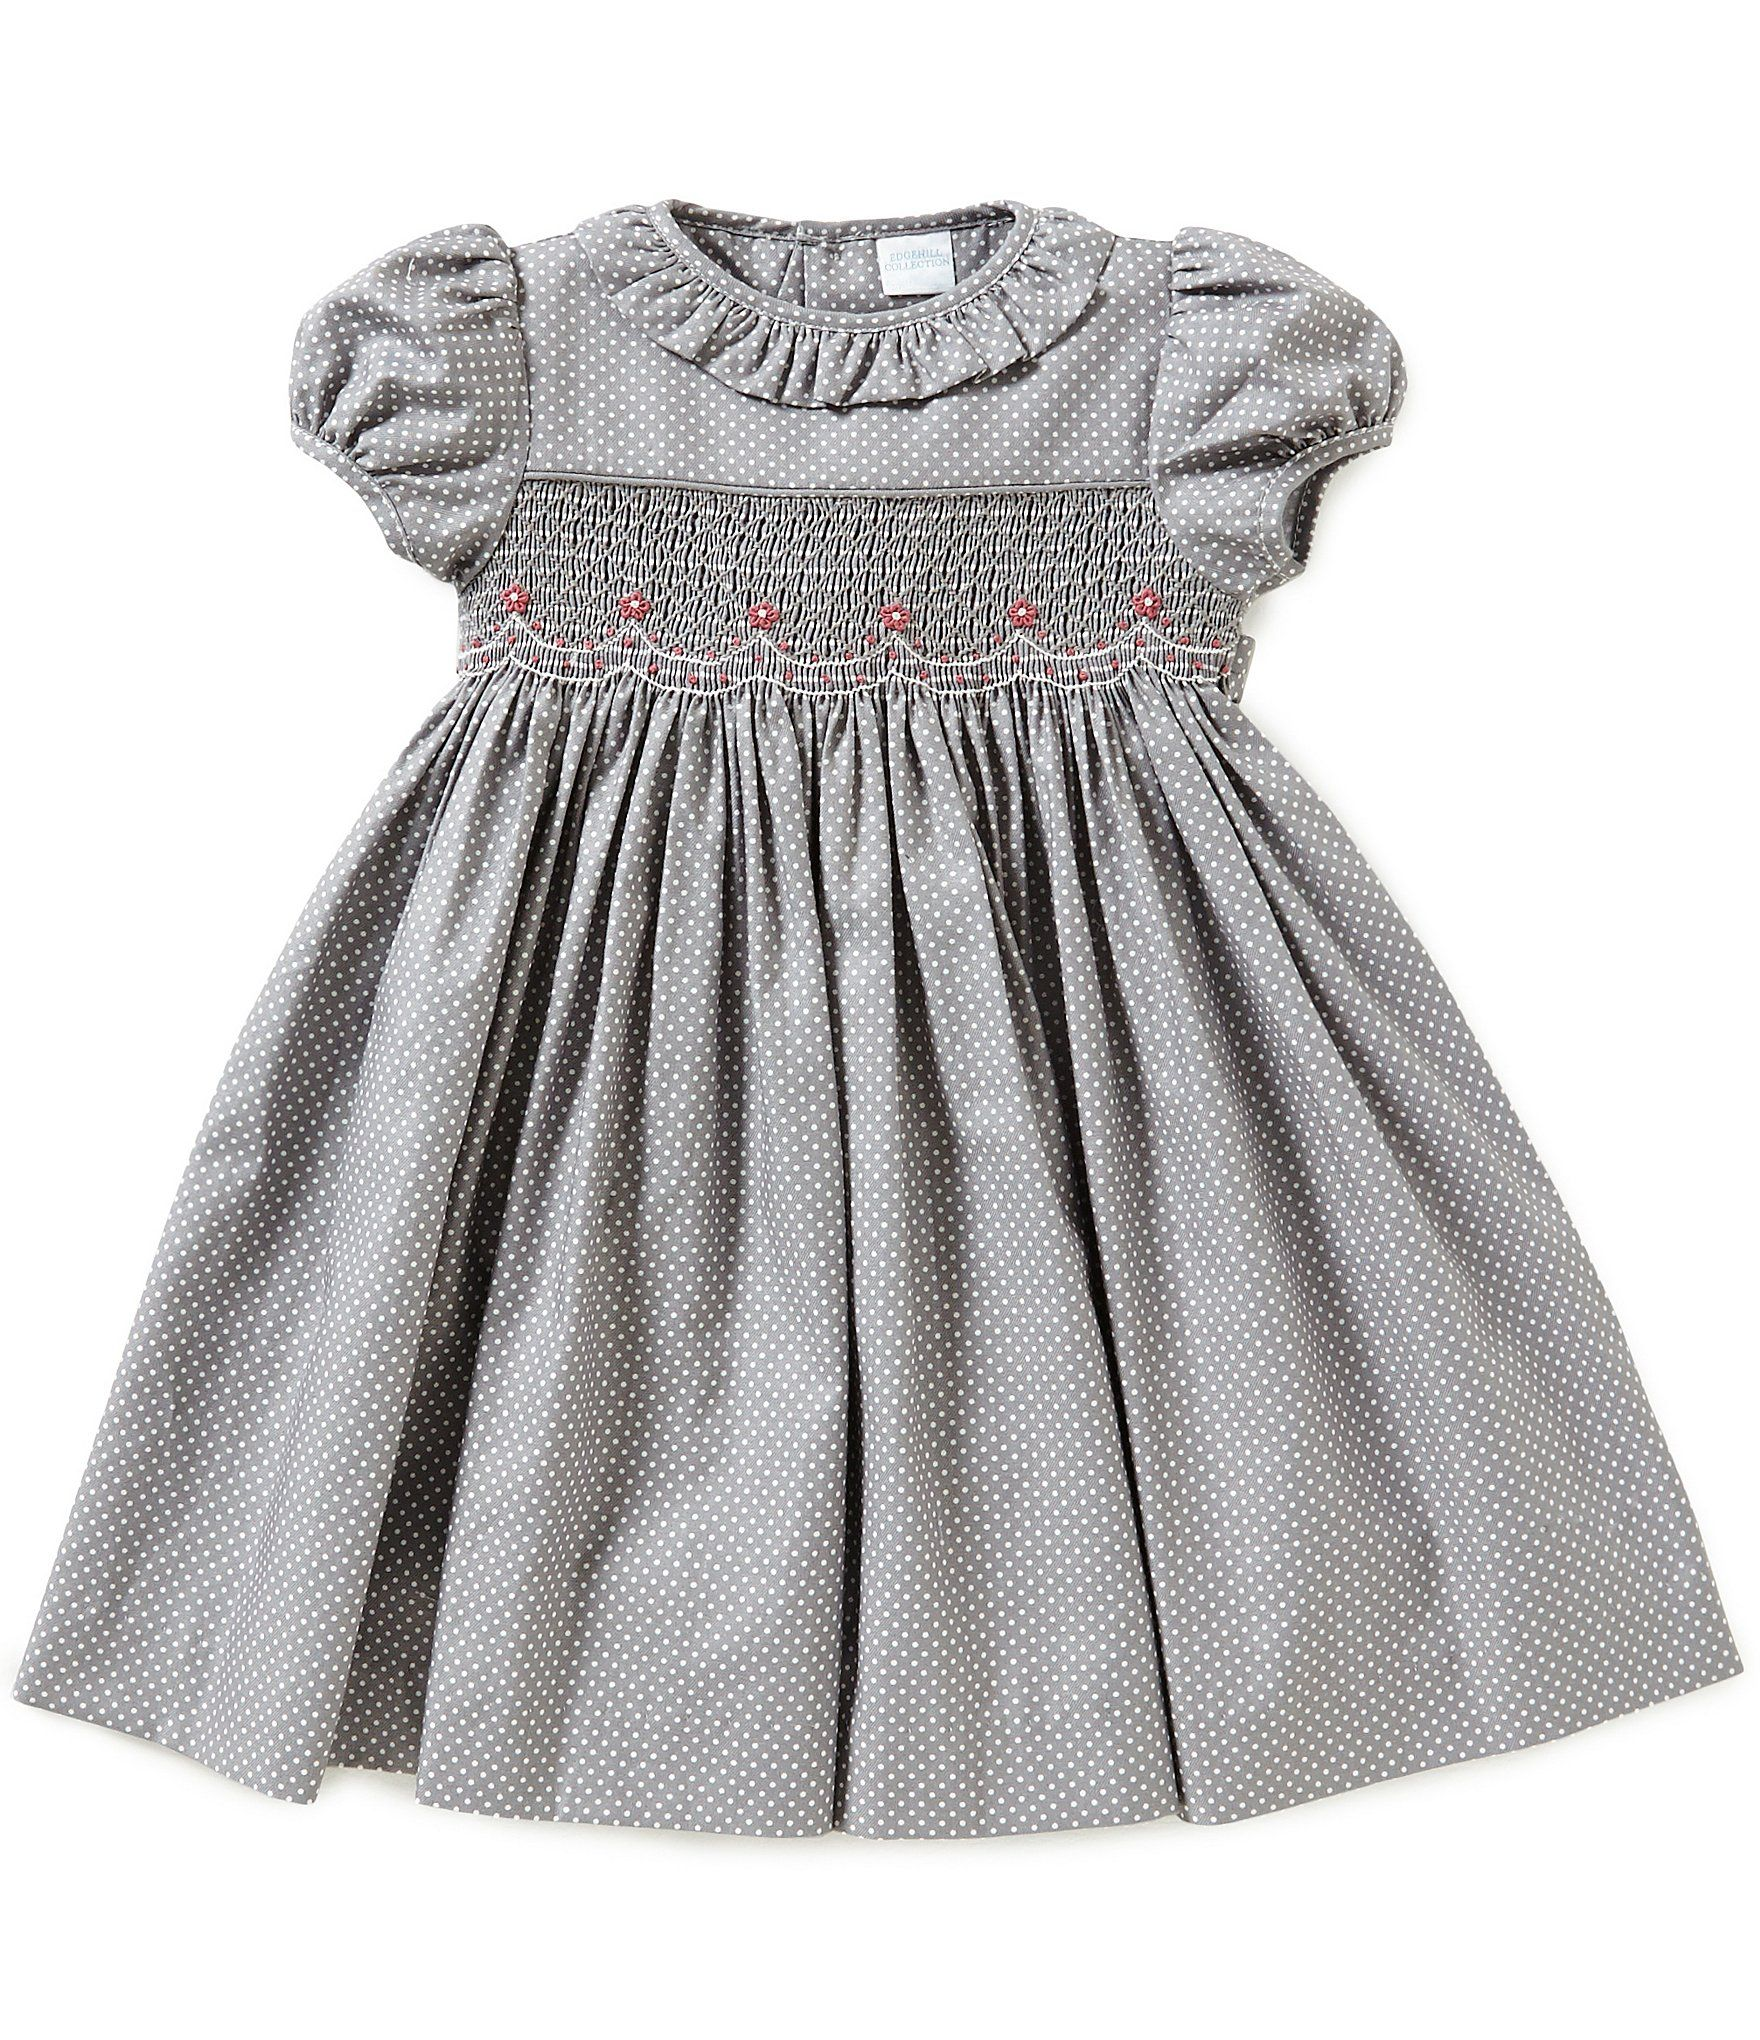 82a94552b56 Shop for Edgehill Collection Baby Girls 3-24 Months Dotted Smocked Dress at  Dillards.com. Visit Dillards.com to find clothing